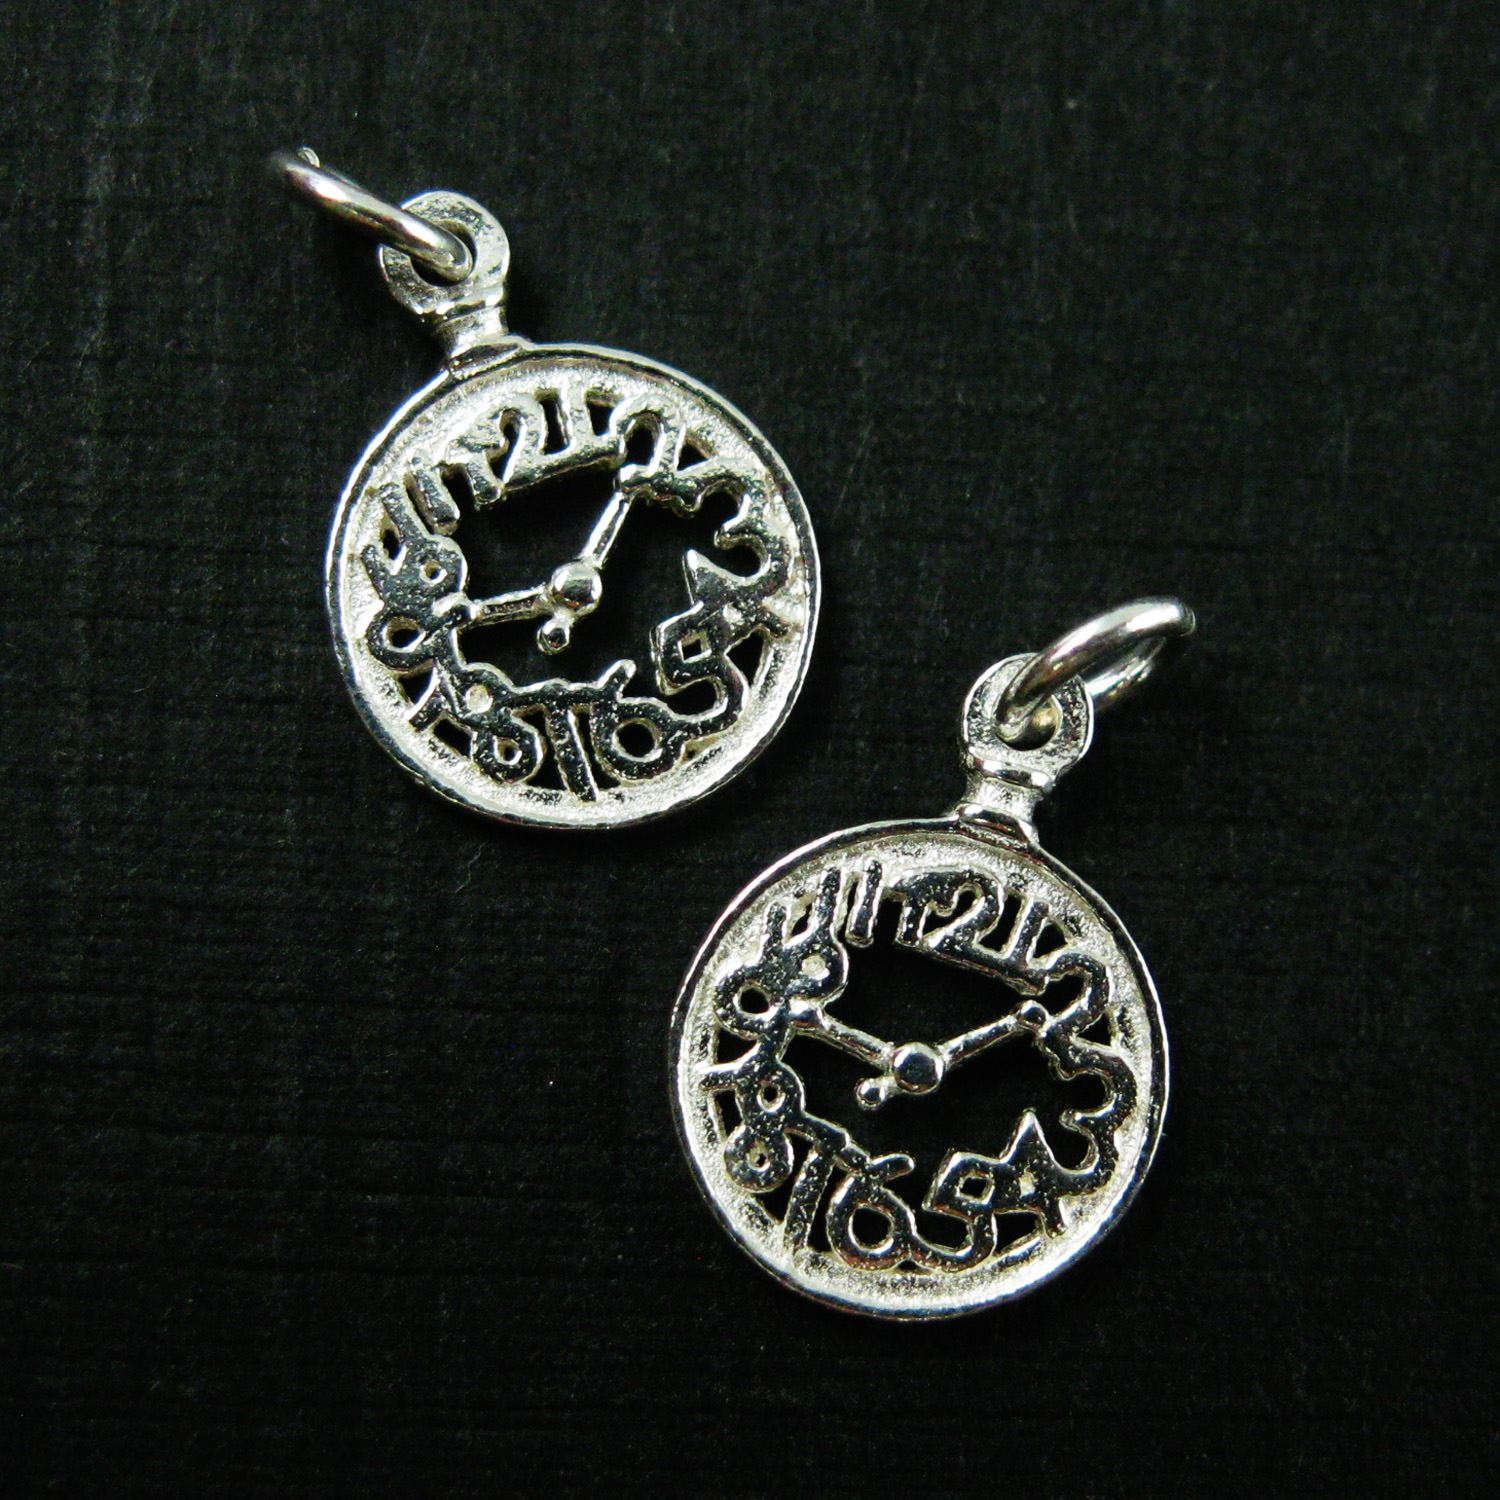 925 Sterling Silver Charm-Silver Clock Charm- Tiny Silver Pocket Watch Charm -8mm (2 pcs)